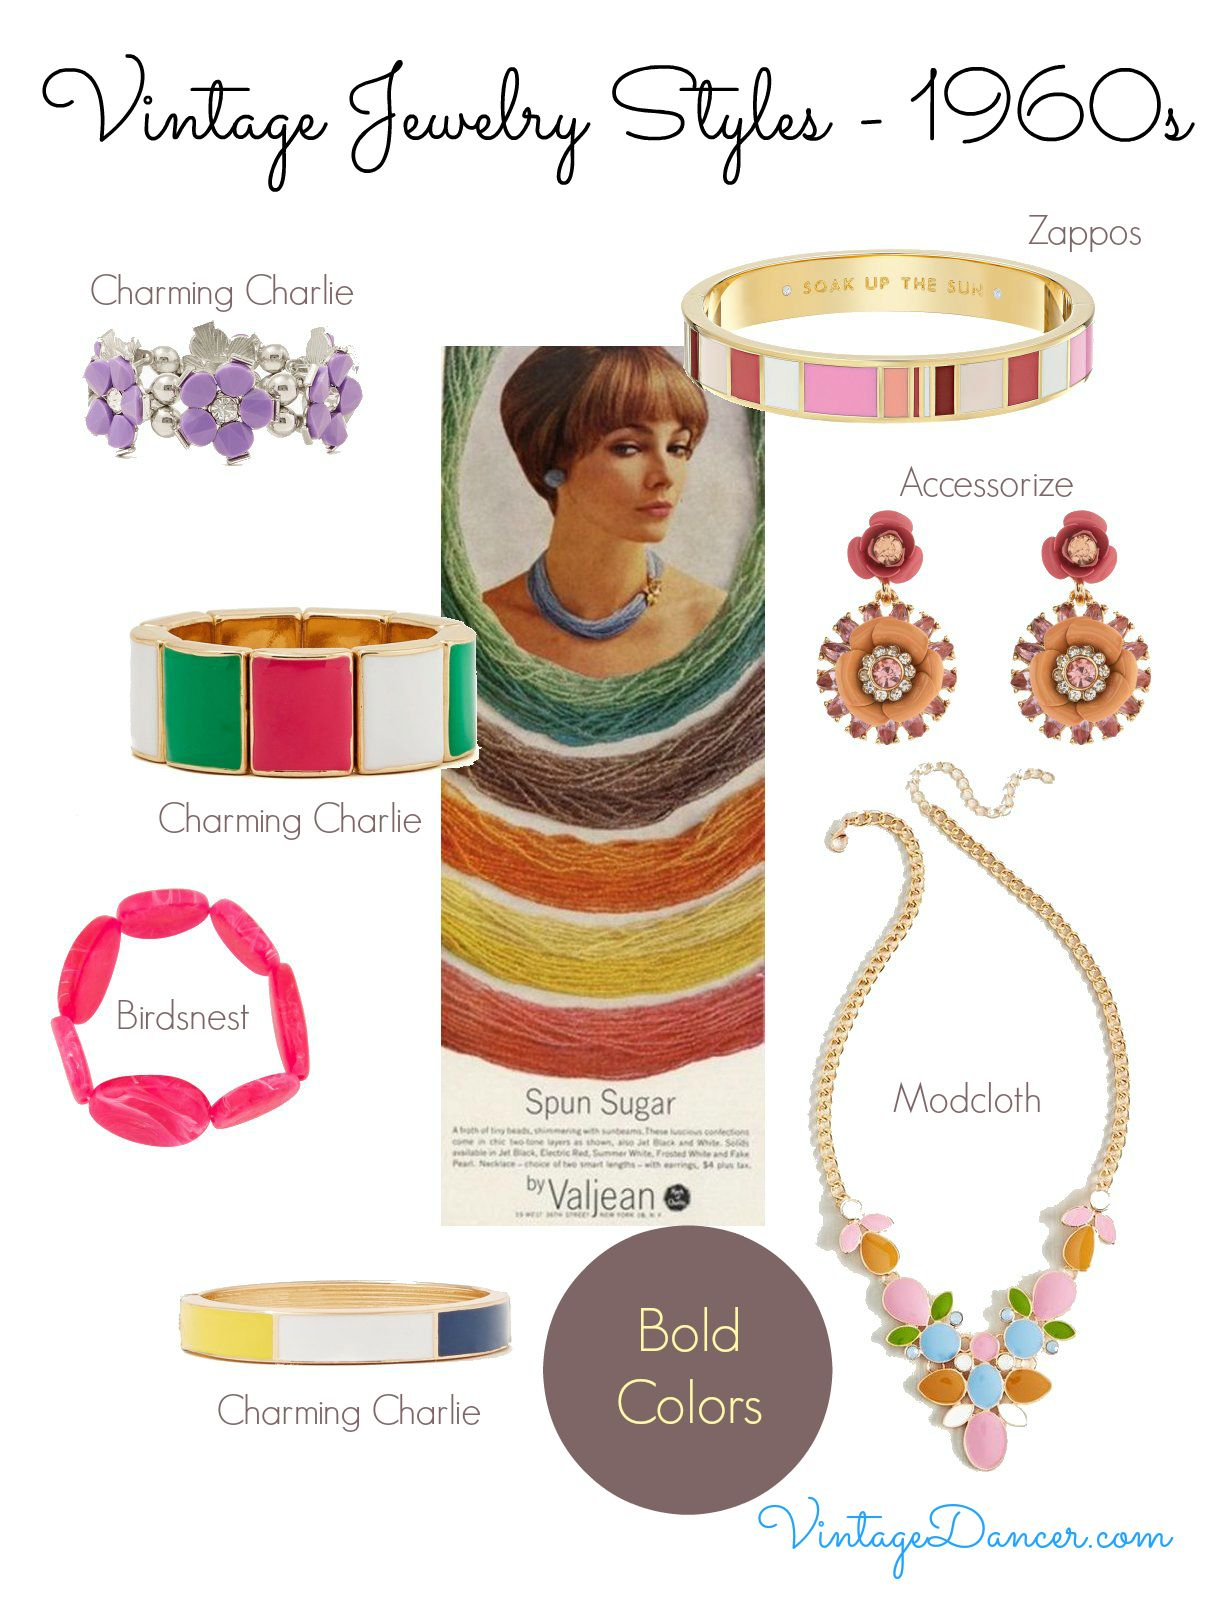 1960s jewelry styles : bold colors POP with sixties fashion